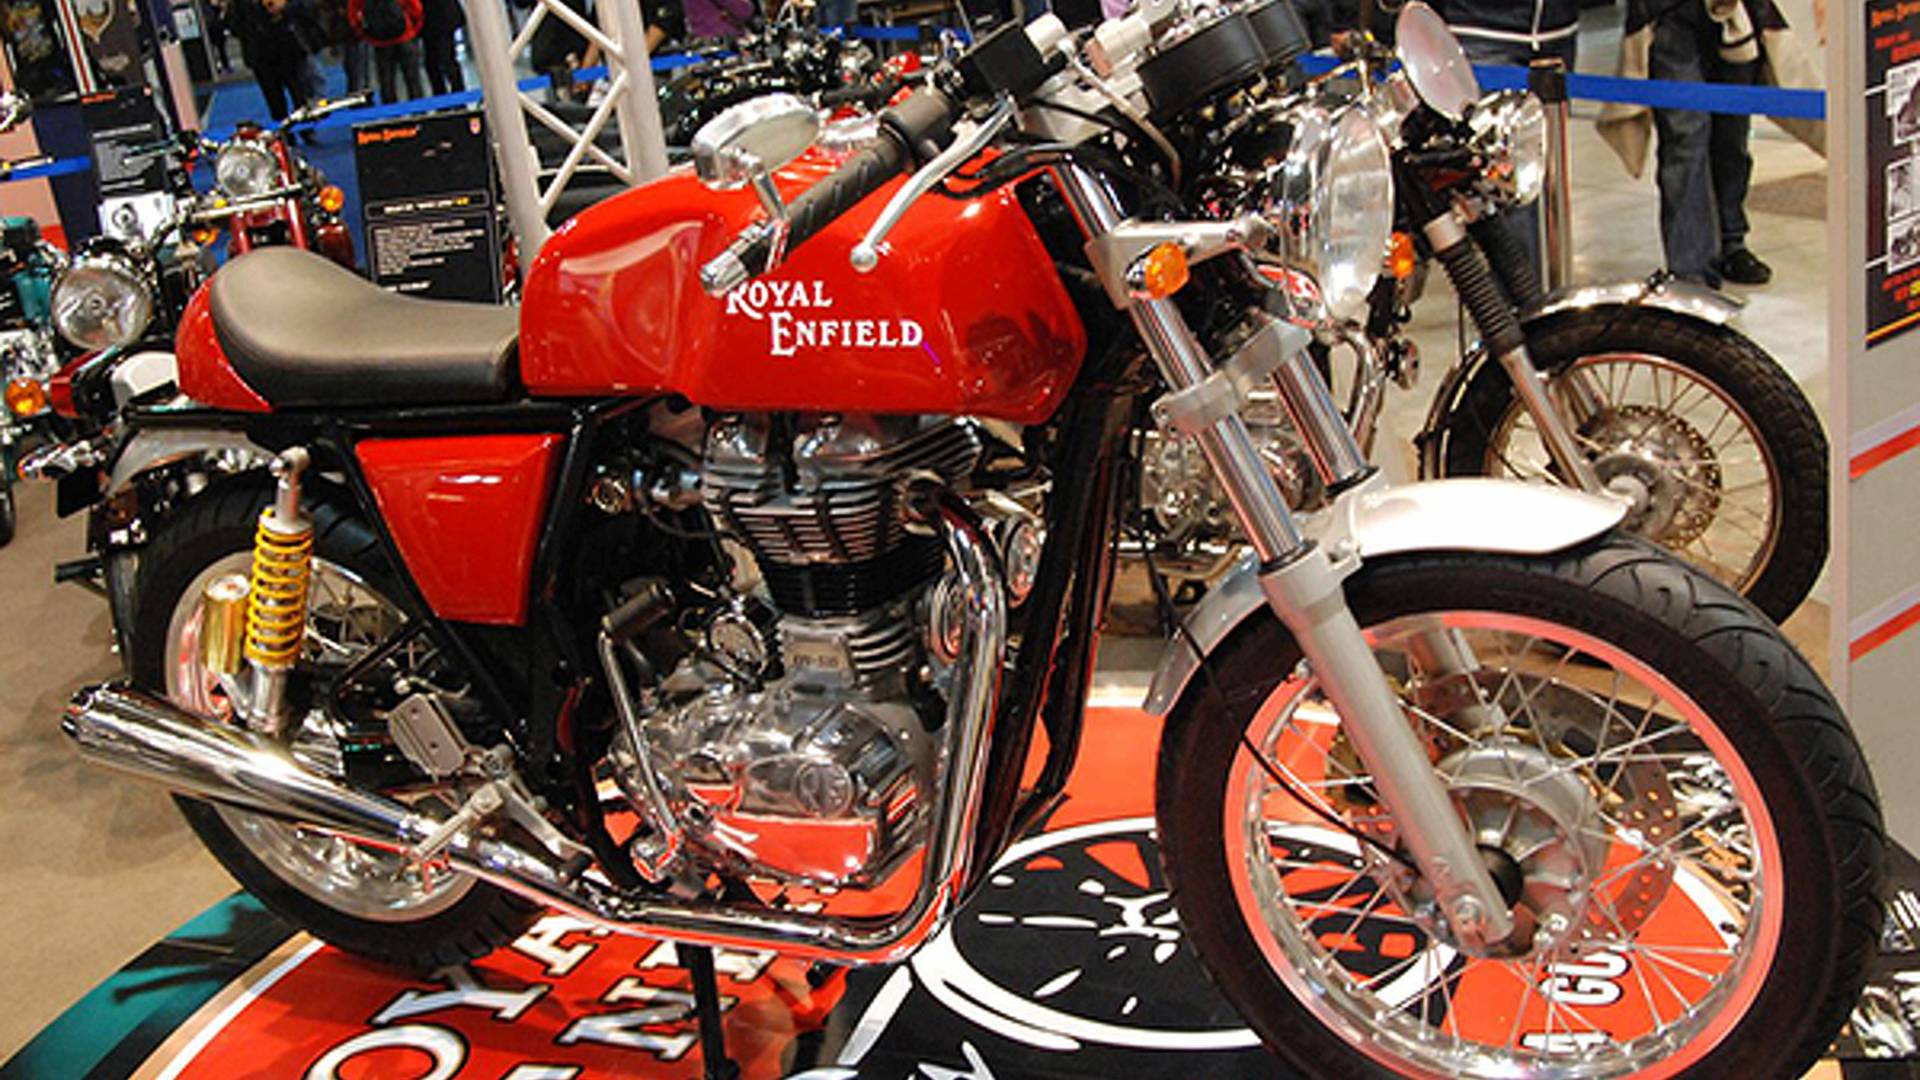 How the Royal Enfield Café Racer changed from concept to production